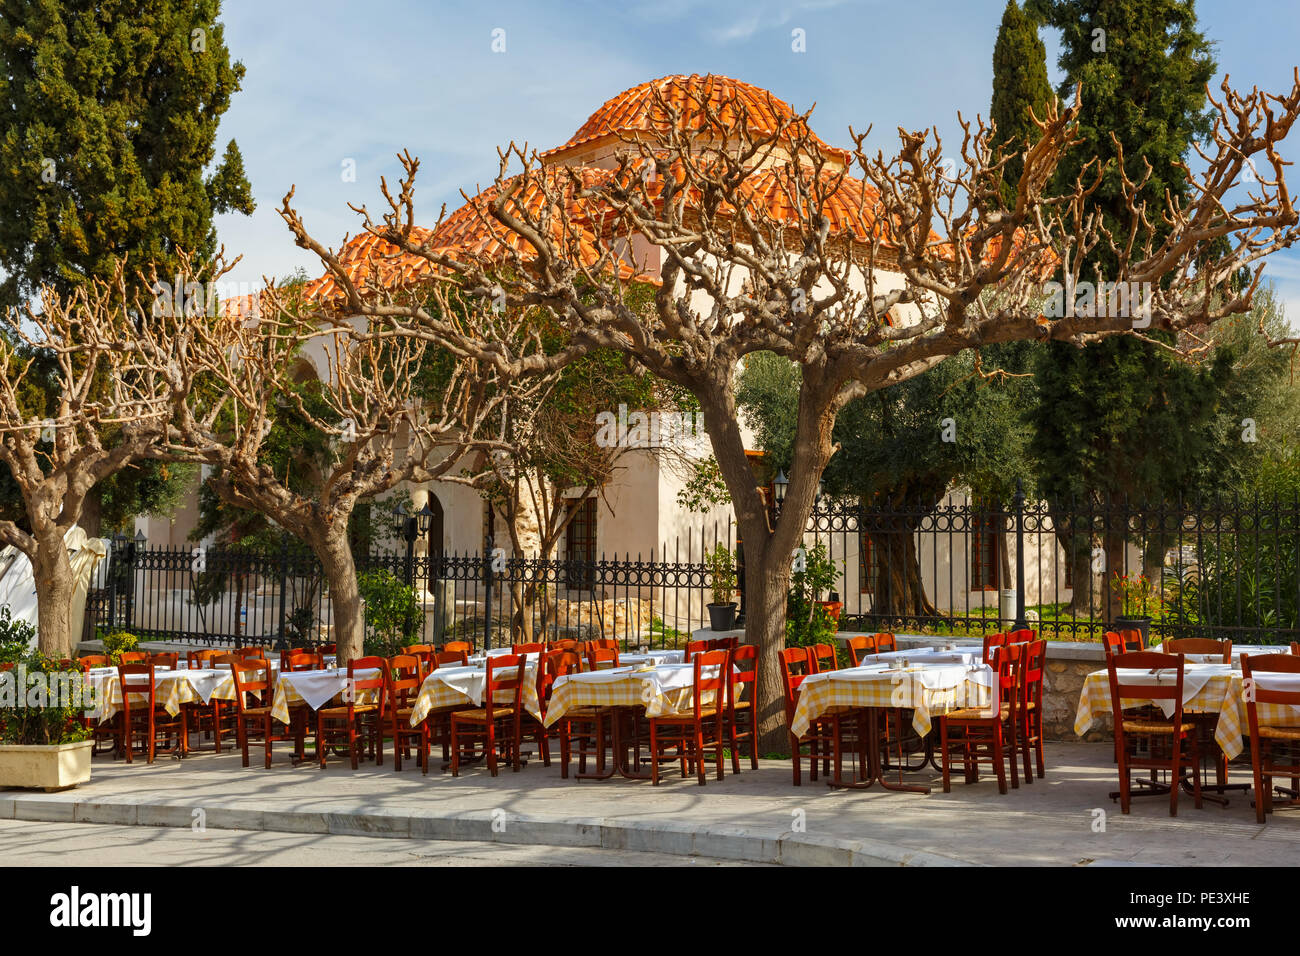 Famous Placa district in Athens, Greece Stock Photo